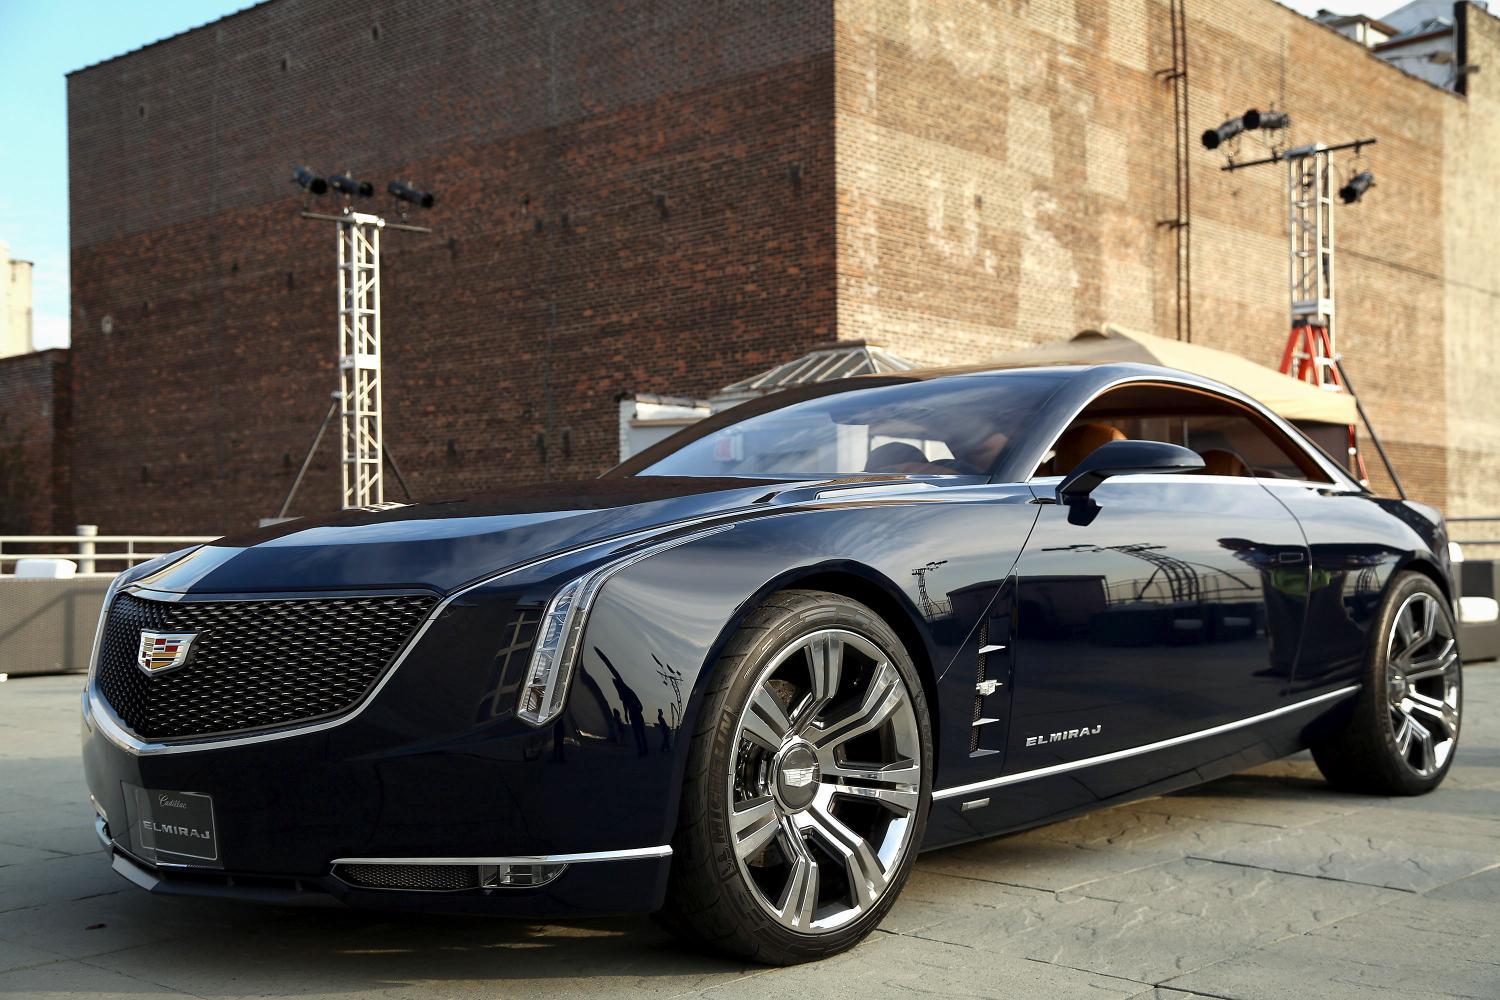 Cadillac Ciel Concept Price Tag - Cadillac CT6 is the name of GM brand's new flagship ...